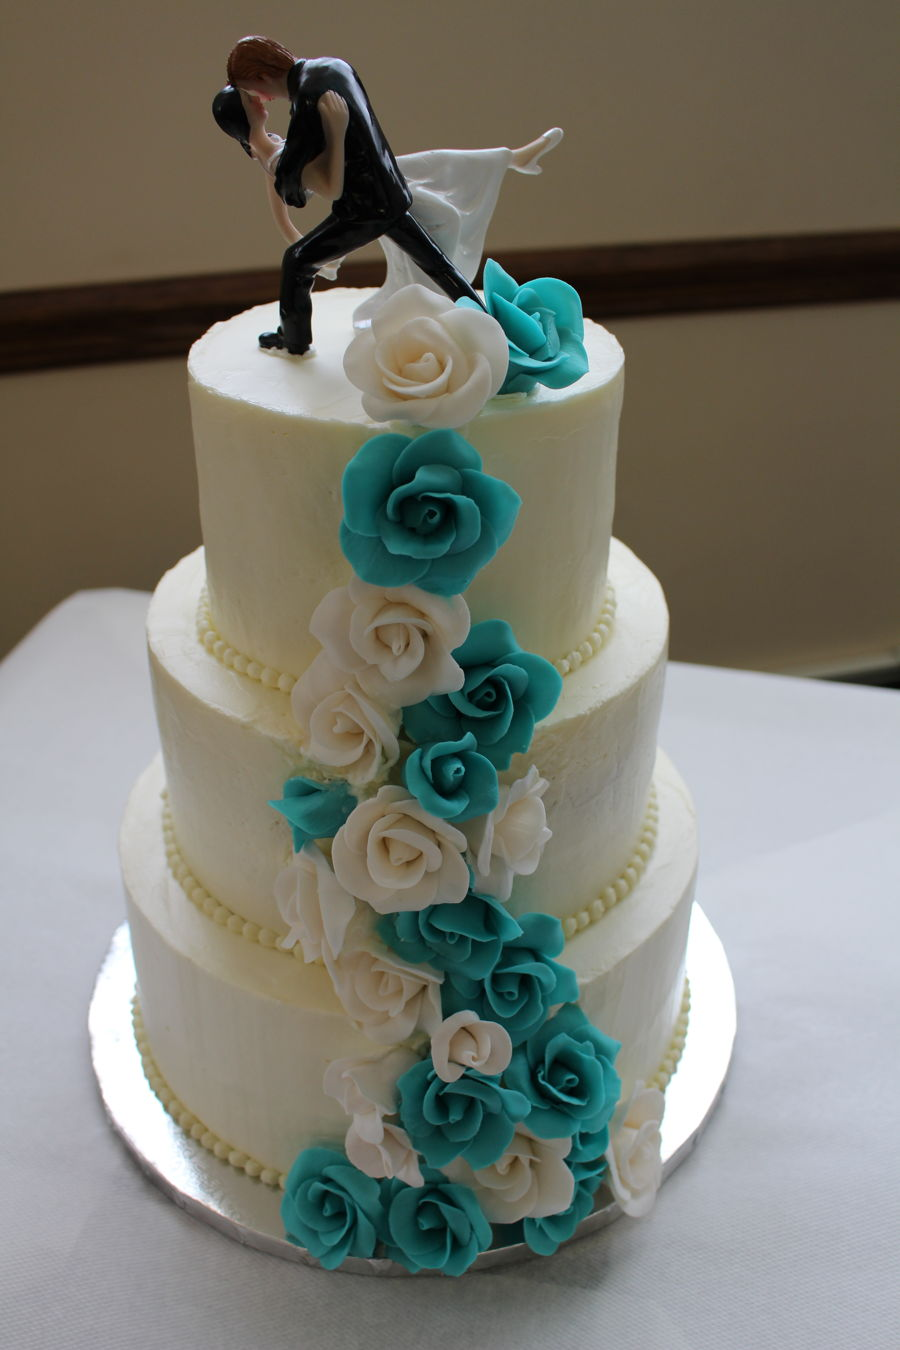 Gumpaste Rose Cascade In Turquoise And White on Cake Central